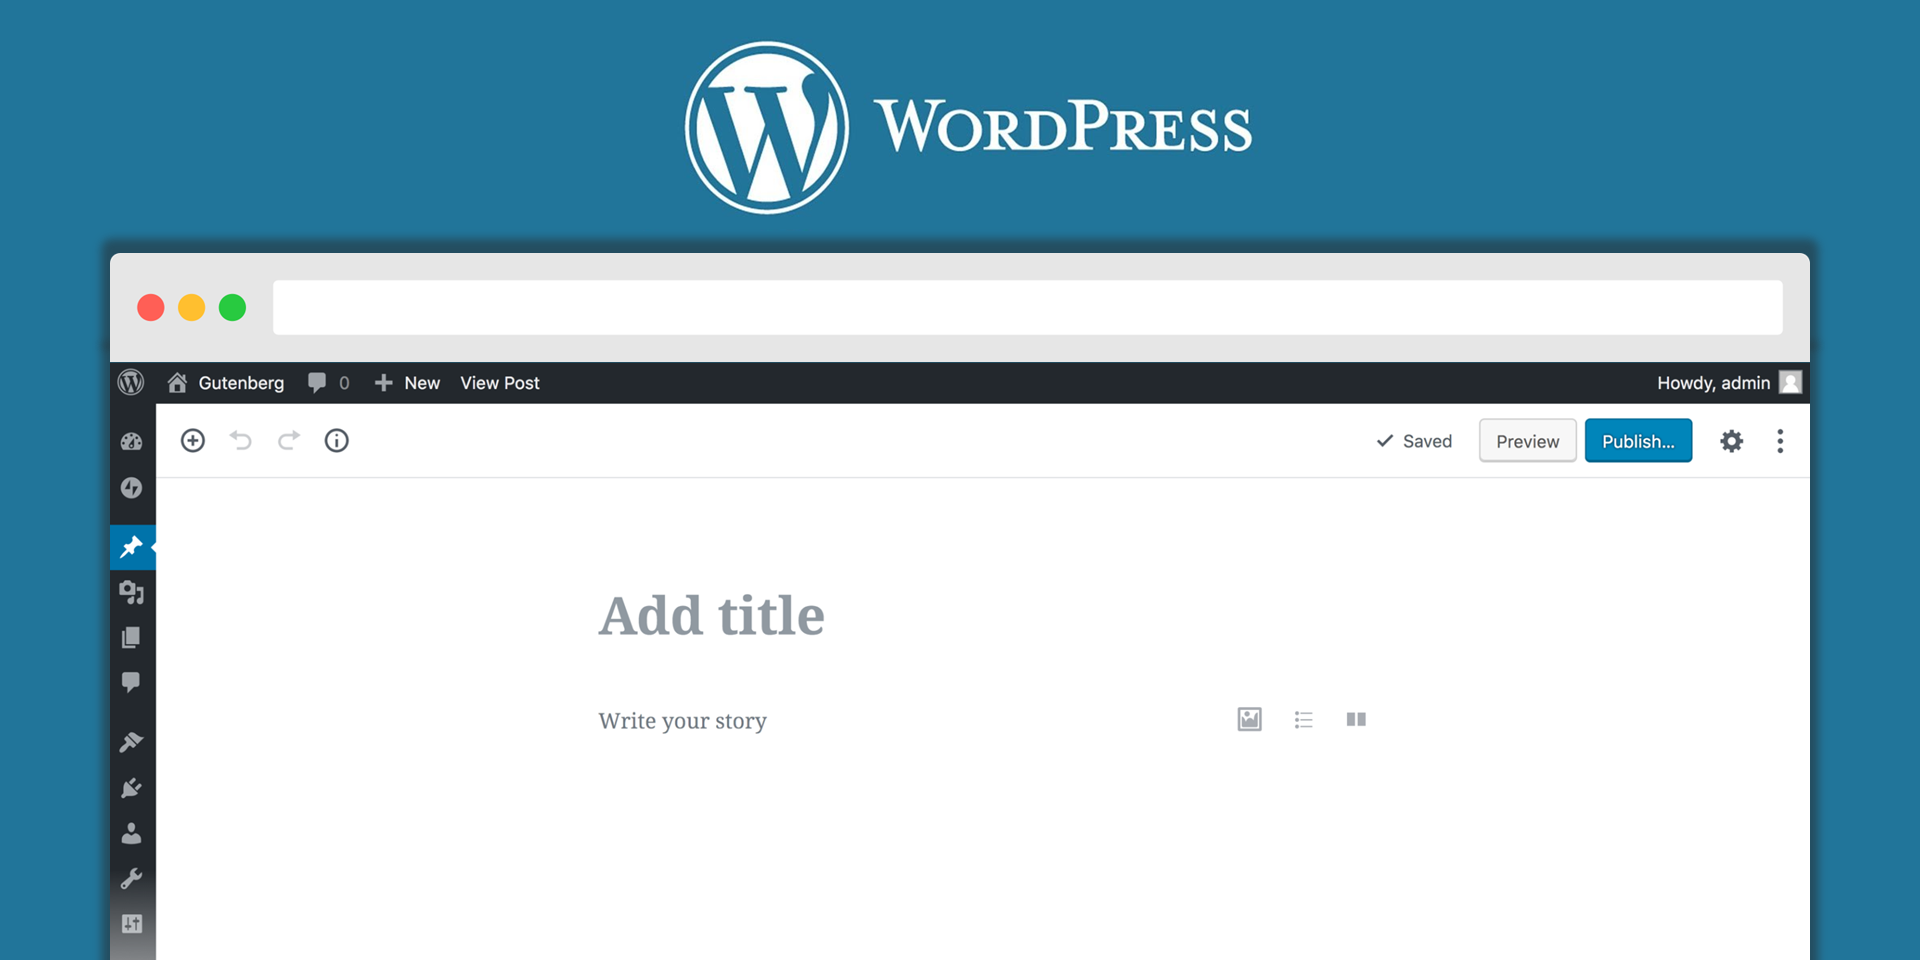 WordPress 5.0 with Gutenberg to be released on 19 Nov 2018